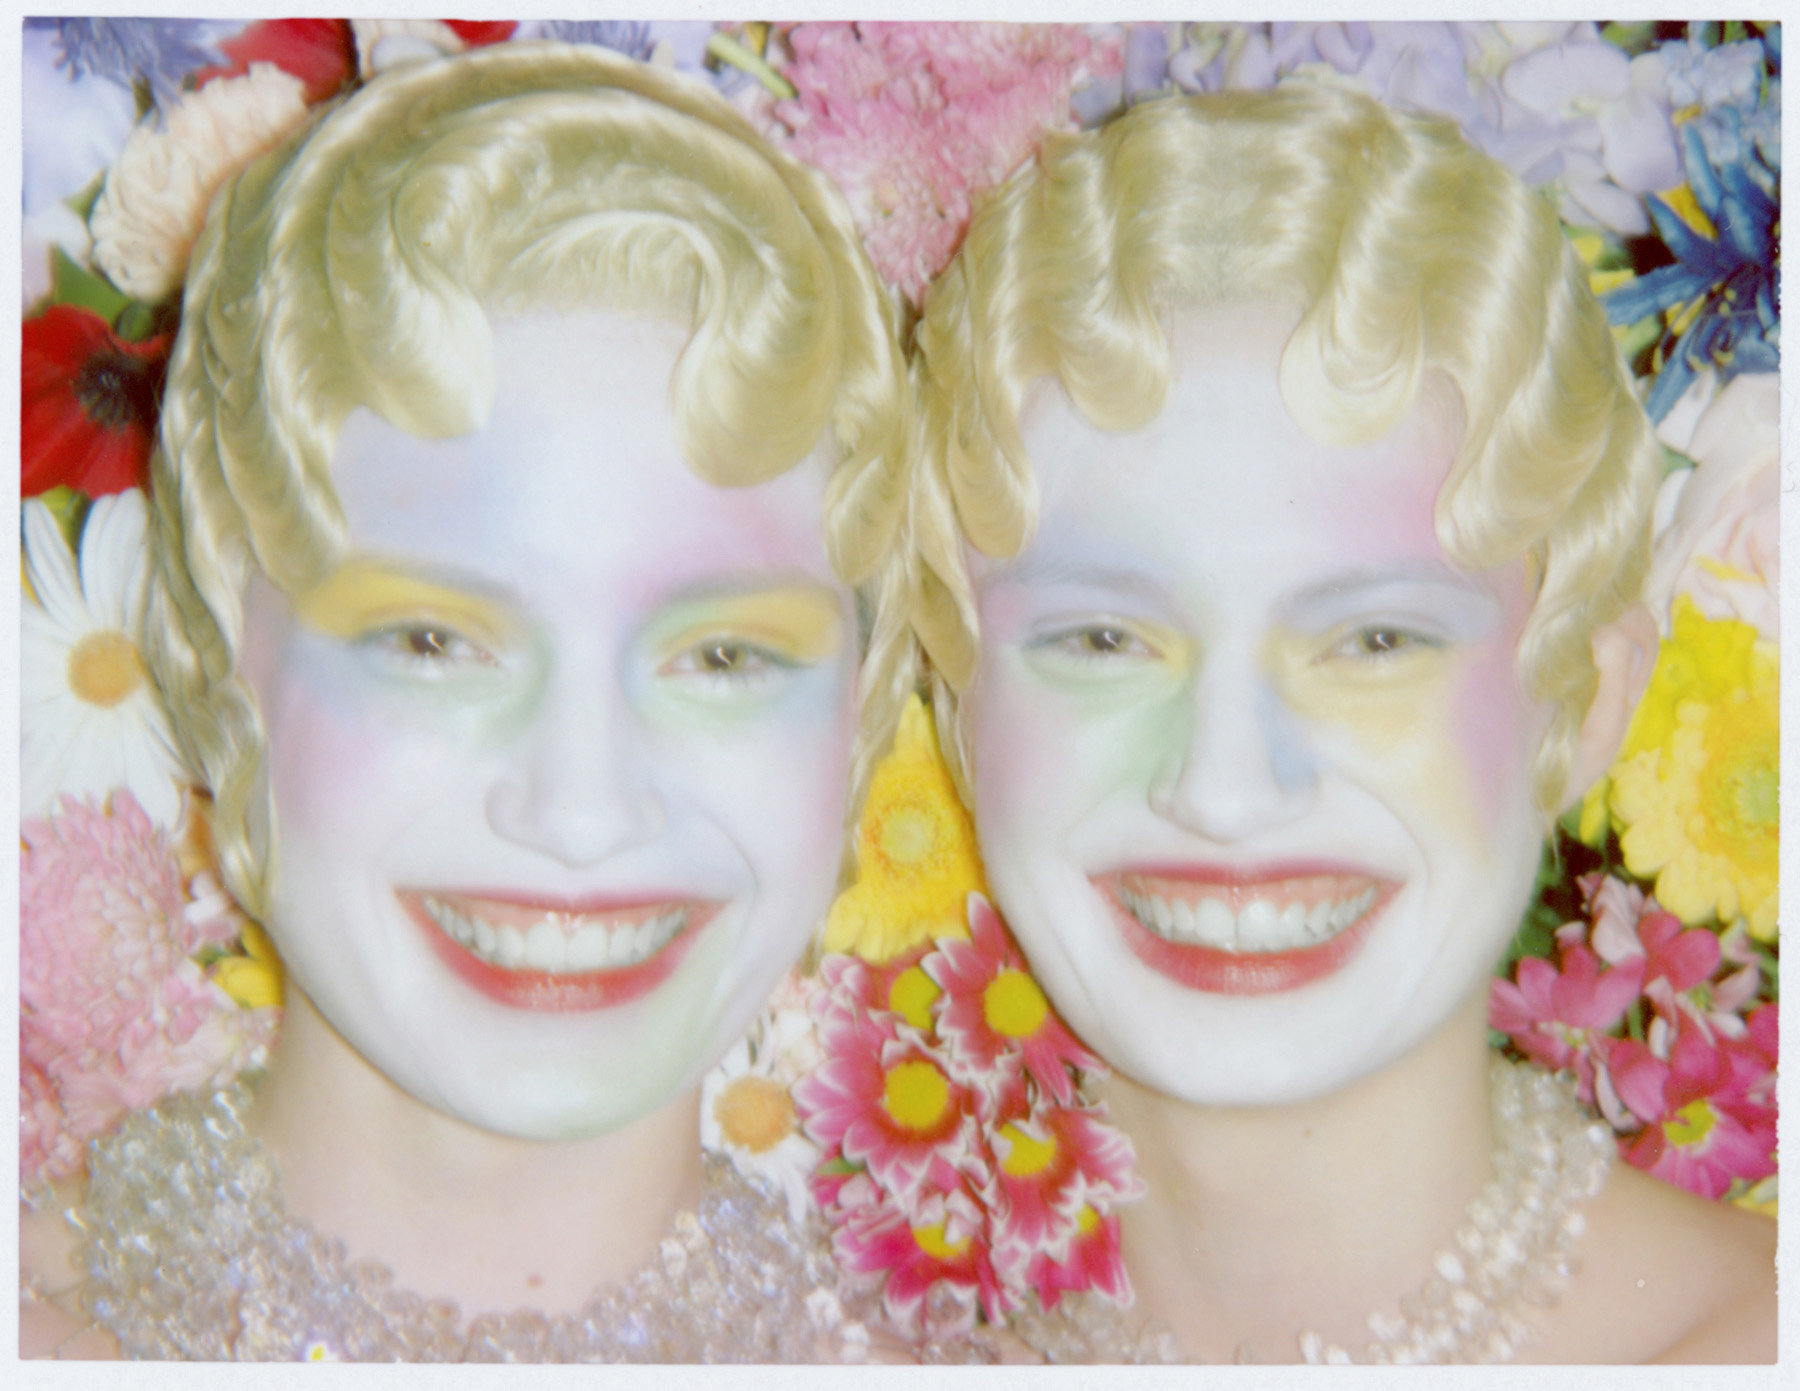 Twins Beauty - Vogue Italia April 2019